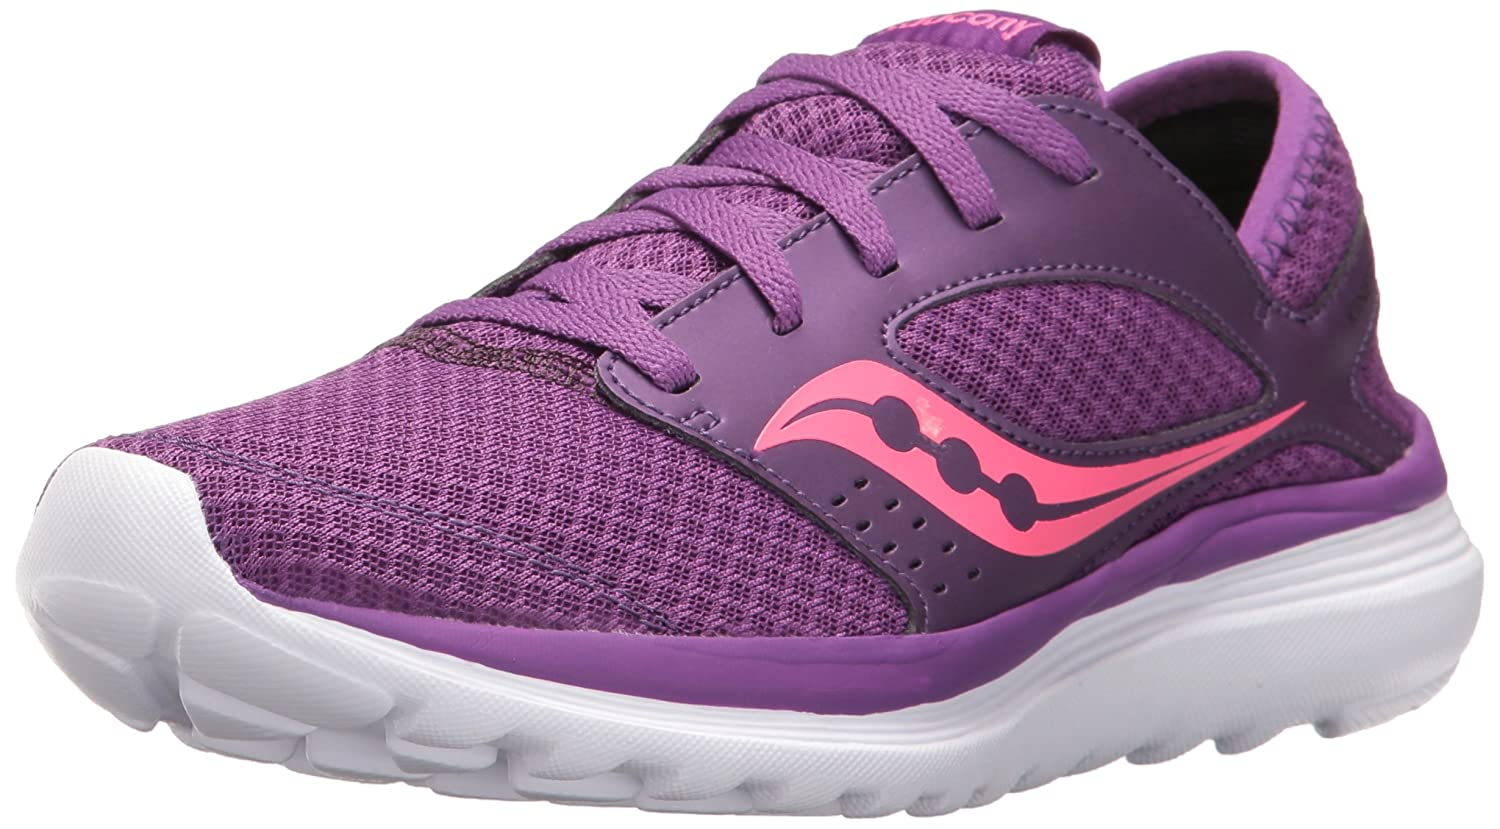 Saucony Women's Kineta Relay Running Shoe B005BESUYS 12 B(M) US|Purple/Pink